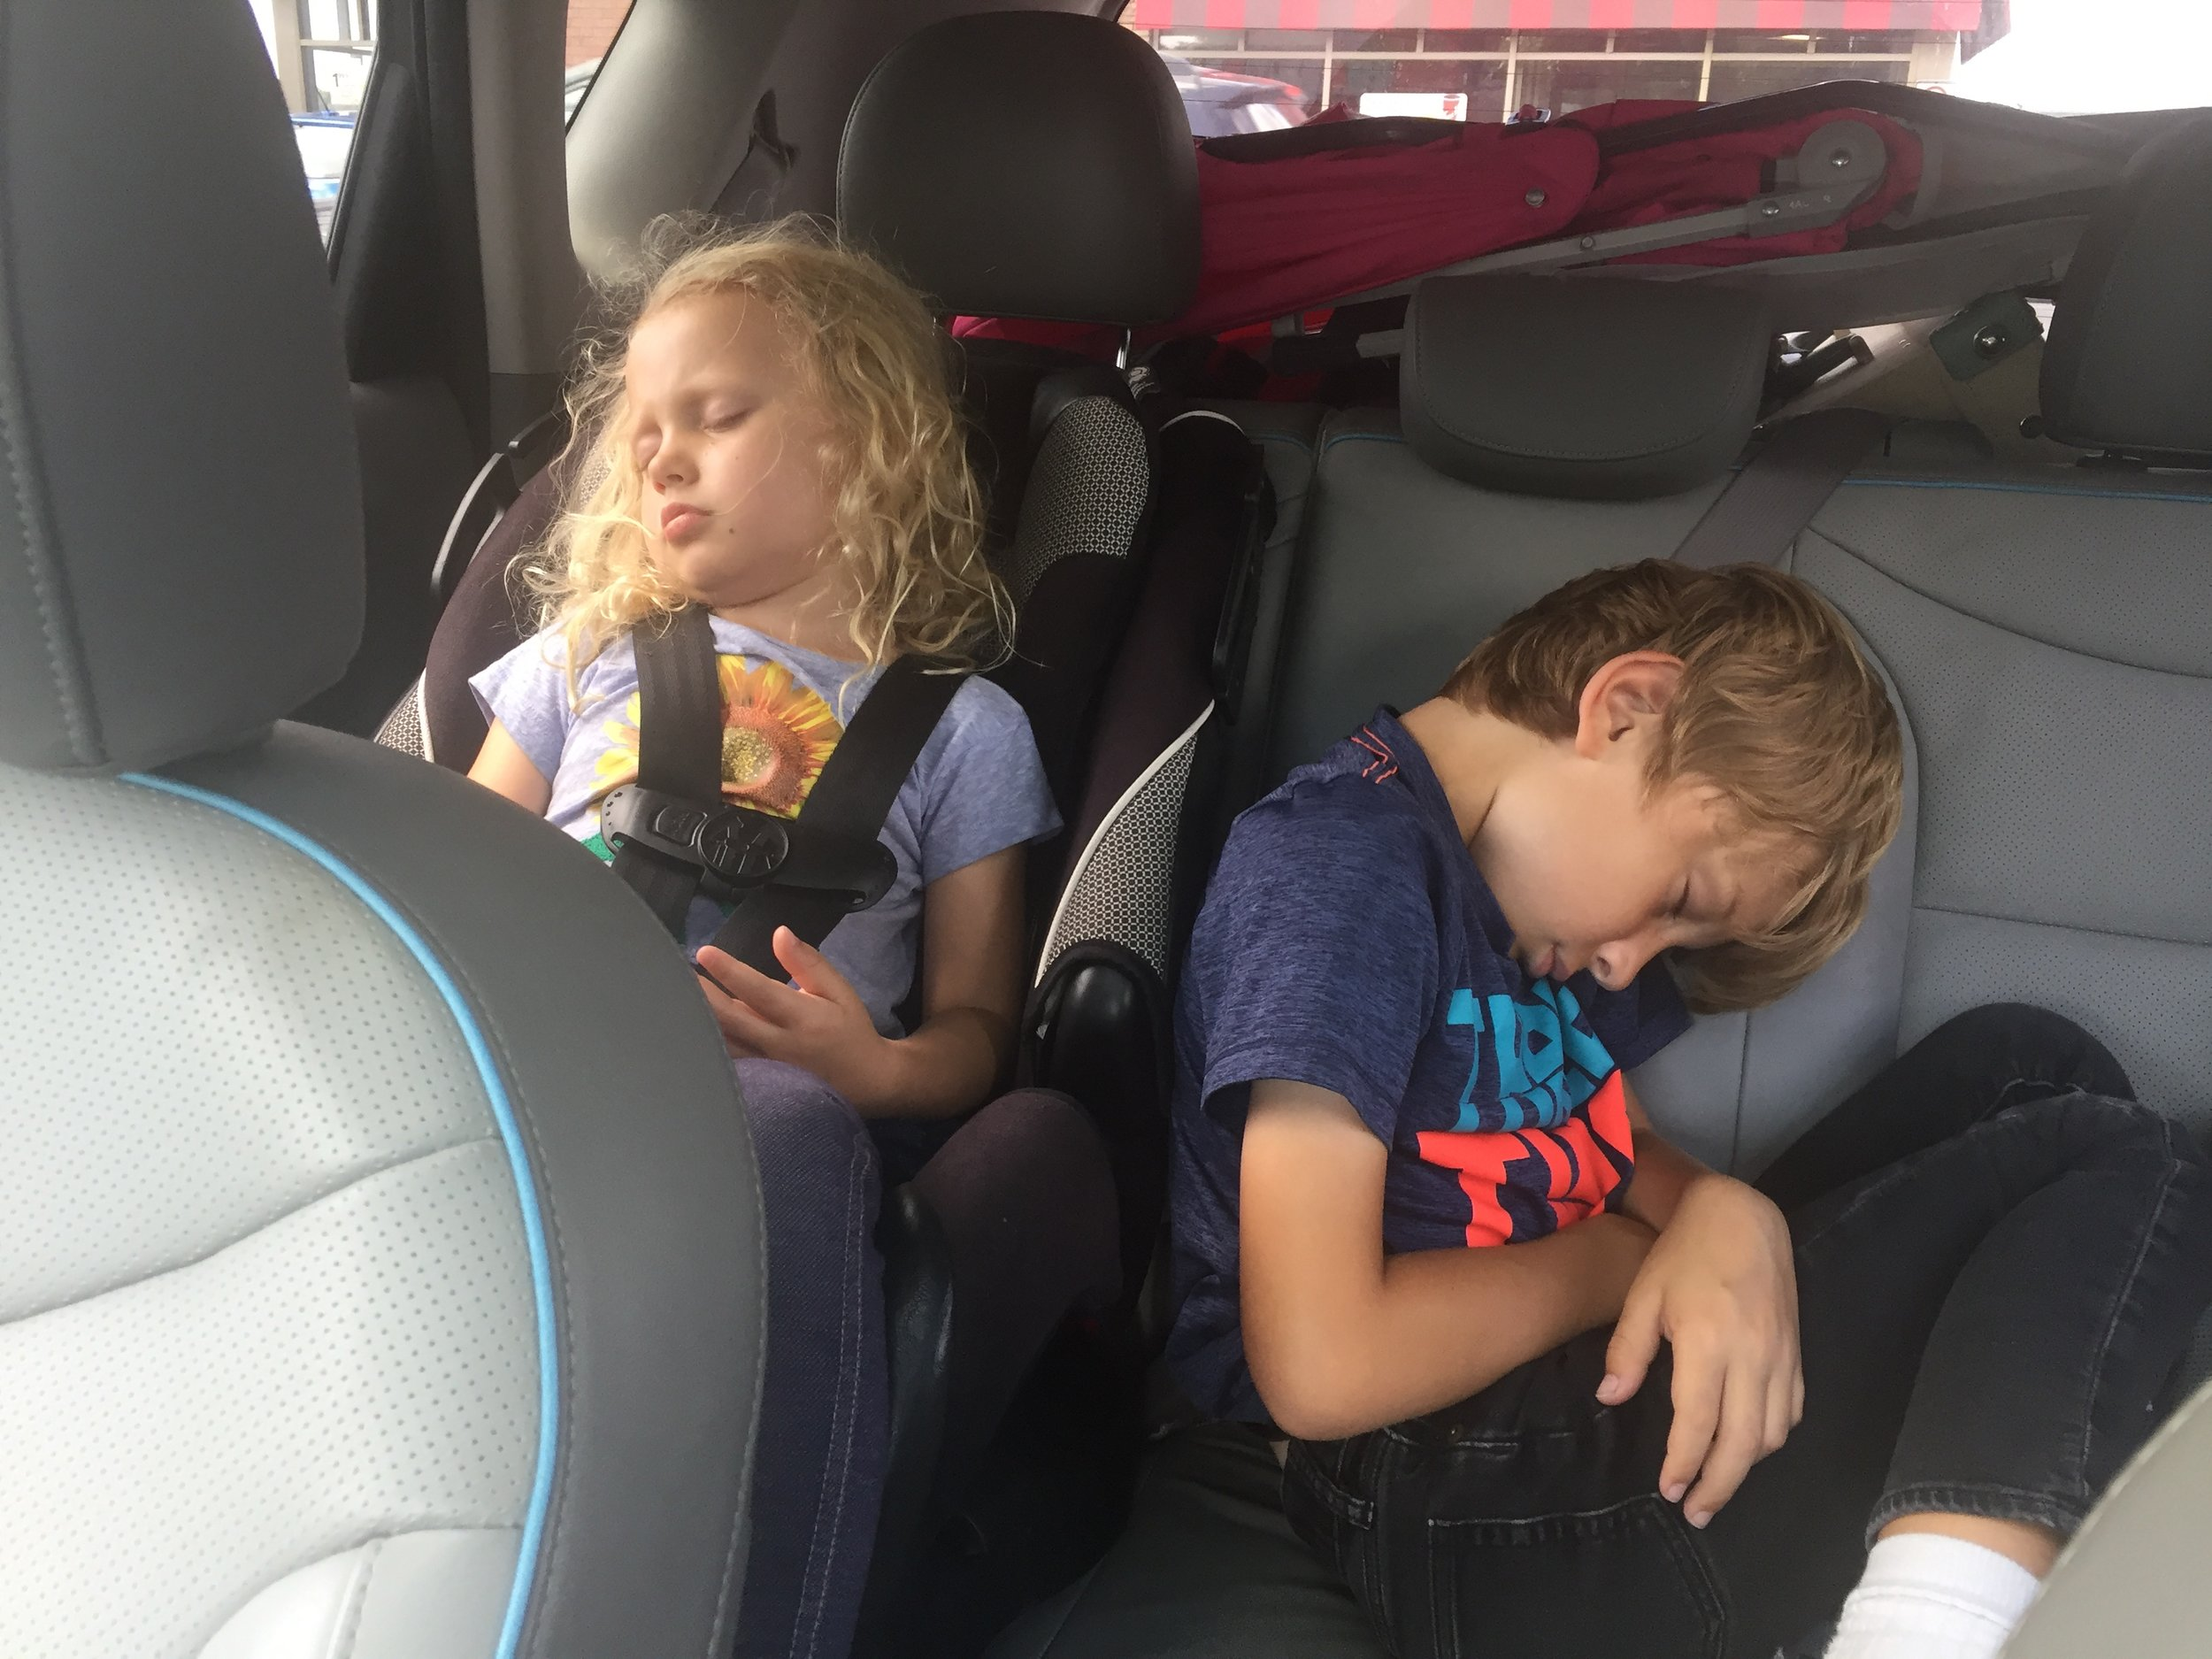 """After zero hours of bus sleep myself, I wanted to tell them, """"I hope that feels good,"""" but was just grateful for minimal backseat squabbles. (To be fair, they are incredible mis-adventurers and were not nearly as hard on me as they had a right to be.)"""